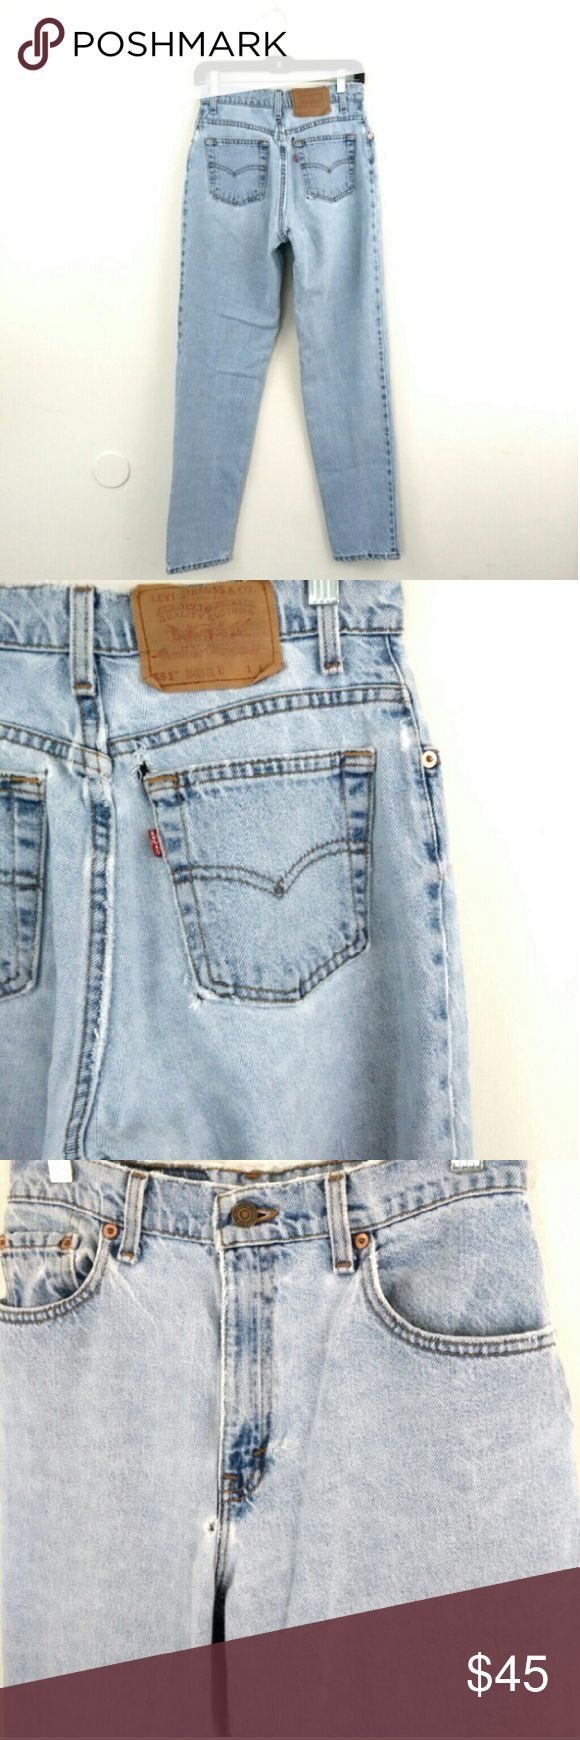 """Vintage High Waist Distressed Levi Jeans IM ACCEPTING OFFERS !!!  High Waist 27"""" - 28"""" Hip 39"""" - 40"""" Rise 14"""" - 15"""" Inseam 31"""" -32"""" No Stretch These are more a size 4  These have normal wear and is naturally distressed over the years, these have Distressed wear and small holes shown in picture. These date back to 1999. There are beautiful and has a very good fit, very comfy.  I Ship Monday/Wednesday/Friday Levi's Jeans"""